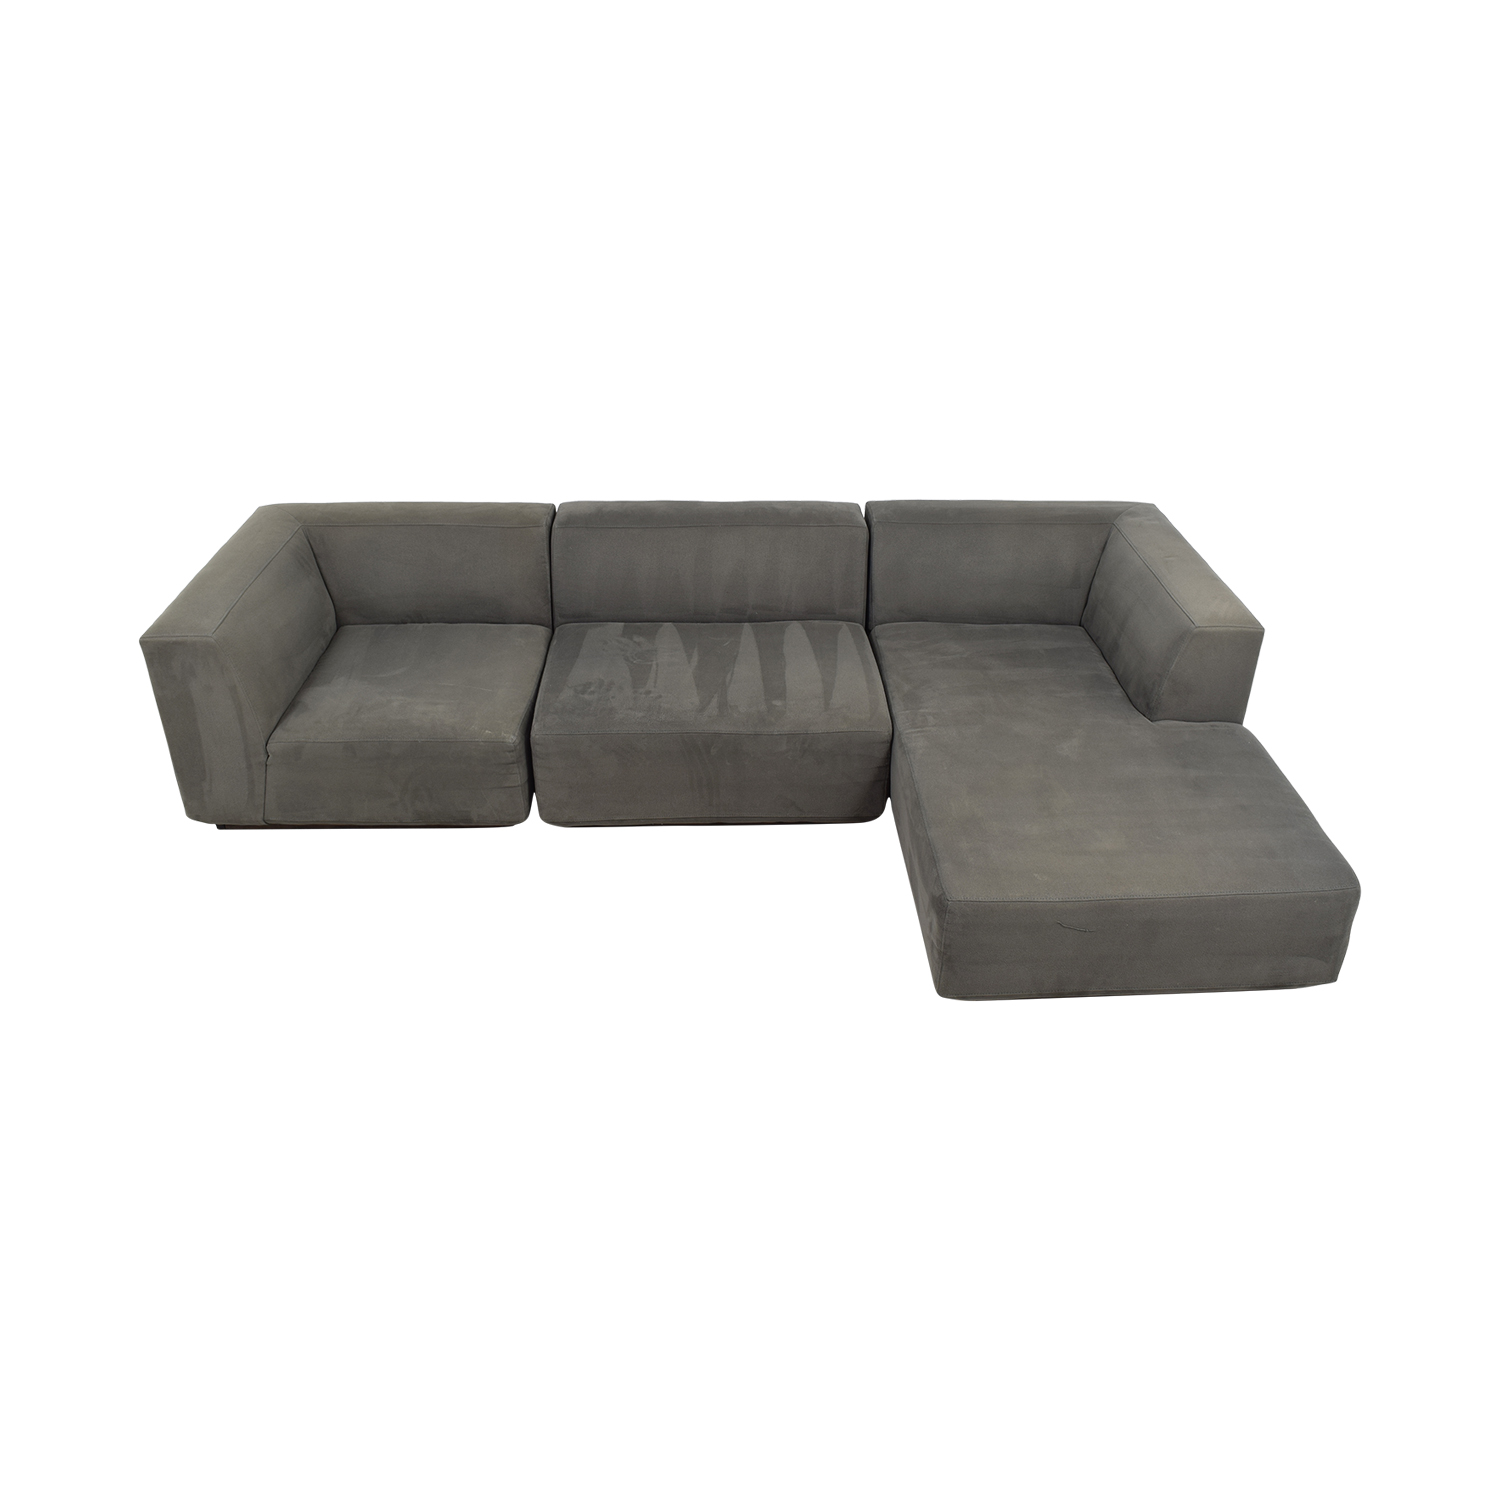 West Elm Baxter Sectional sale